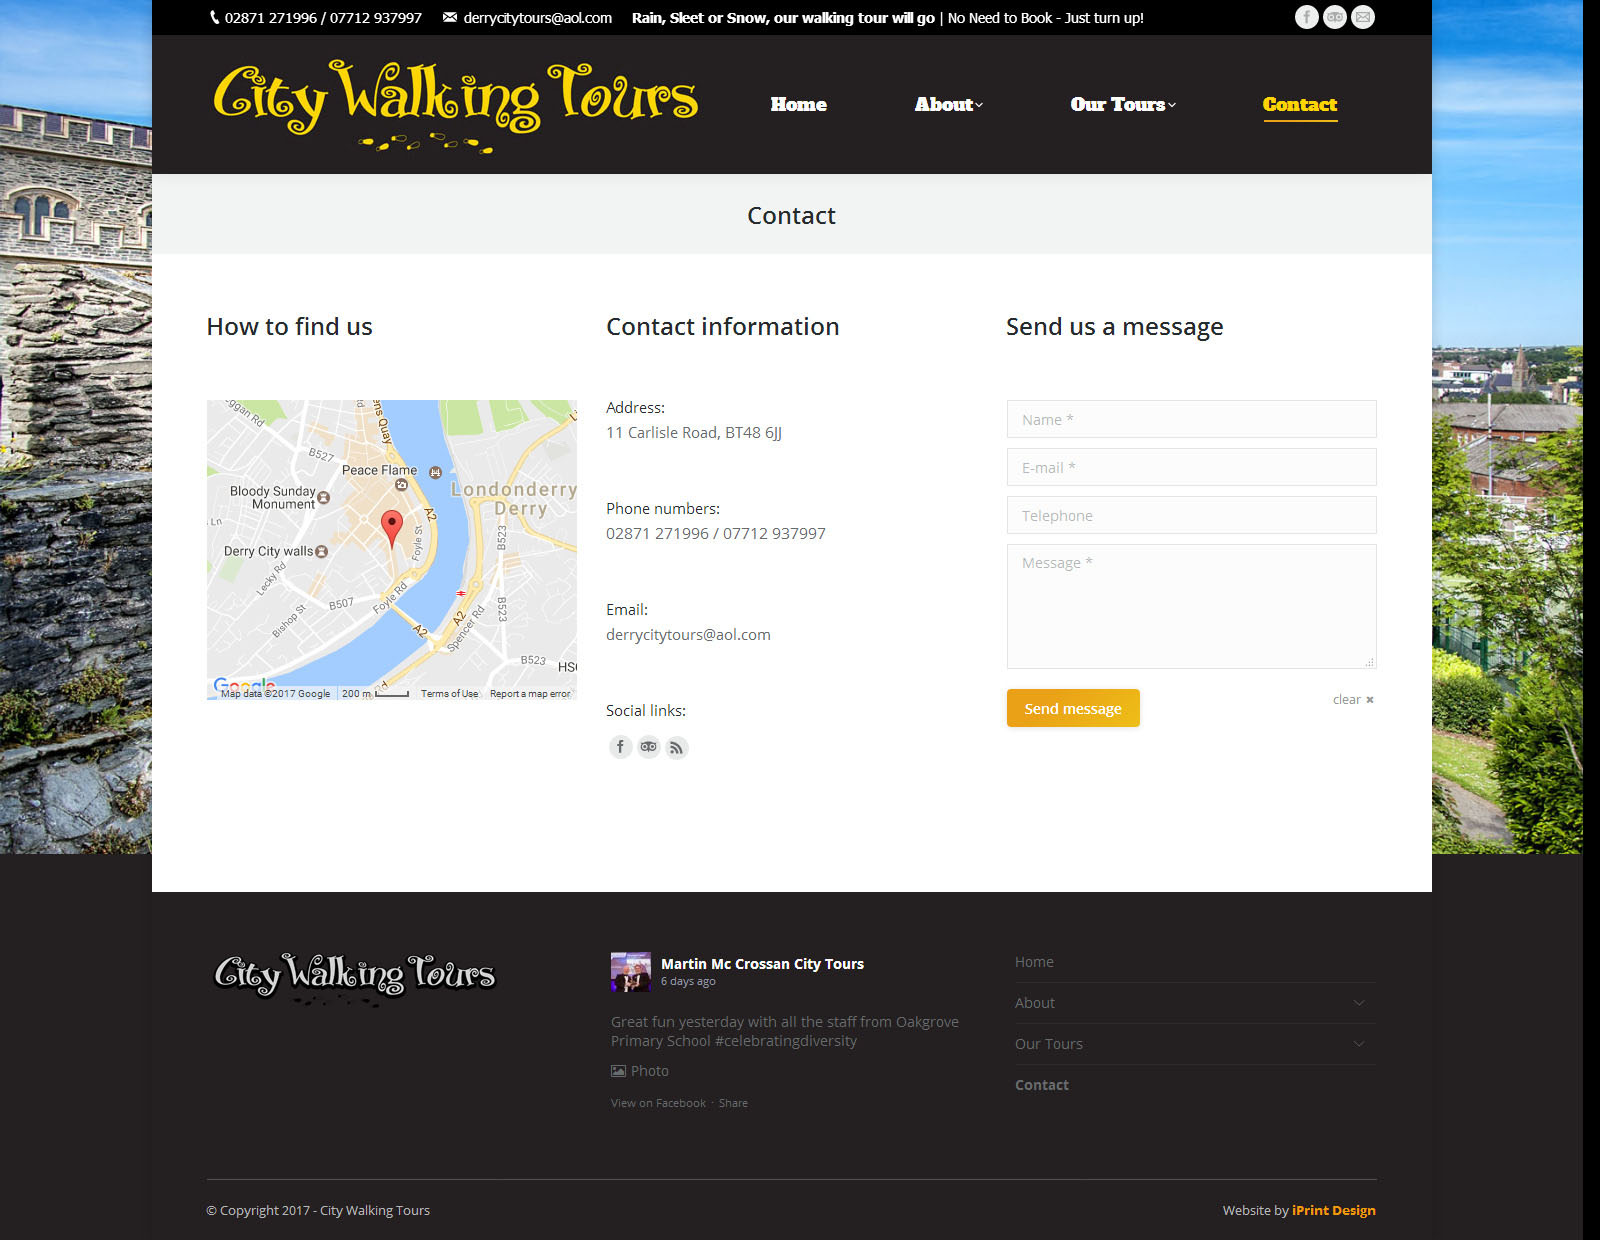 City Walking Tours - Website Sample Page